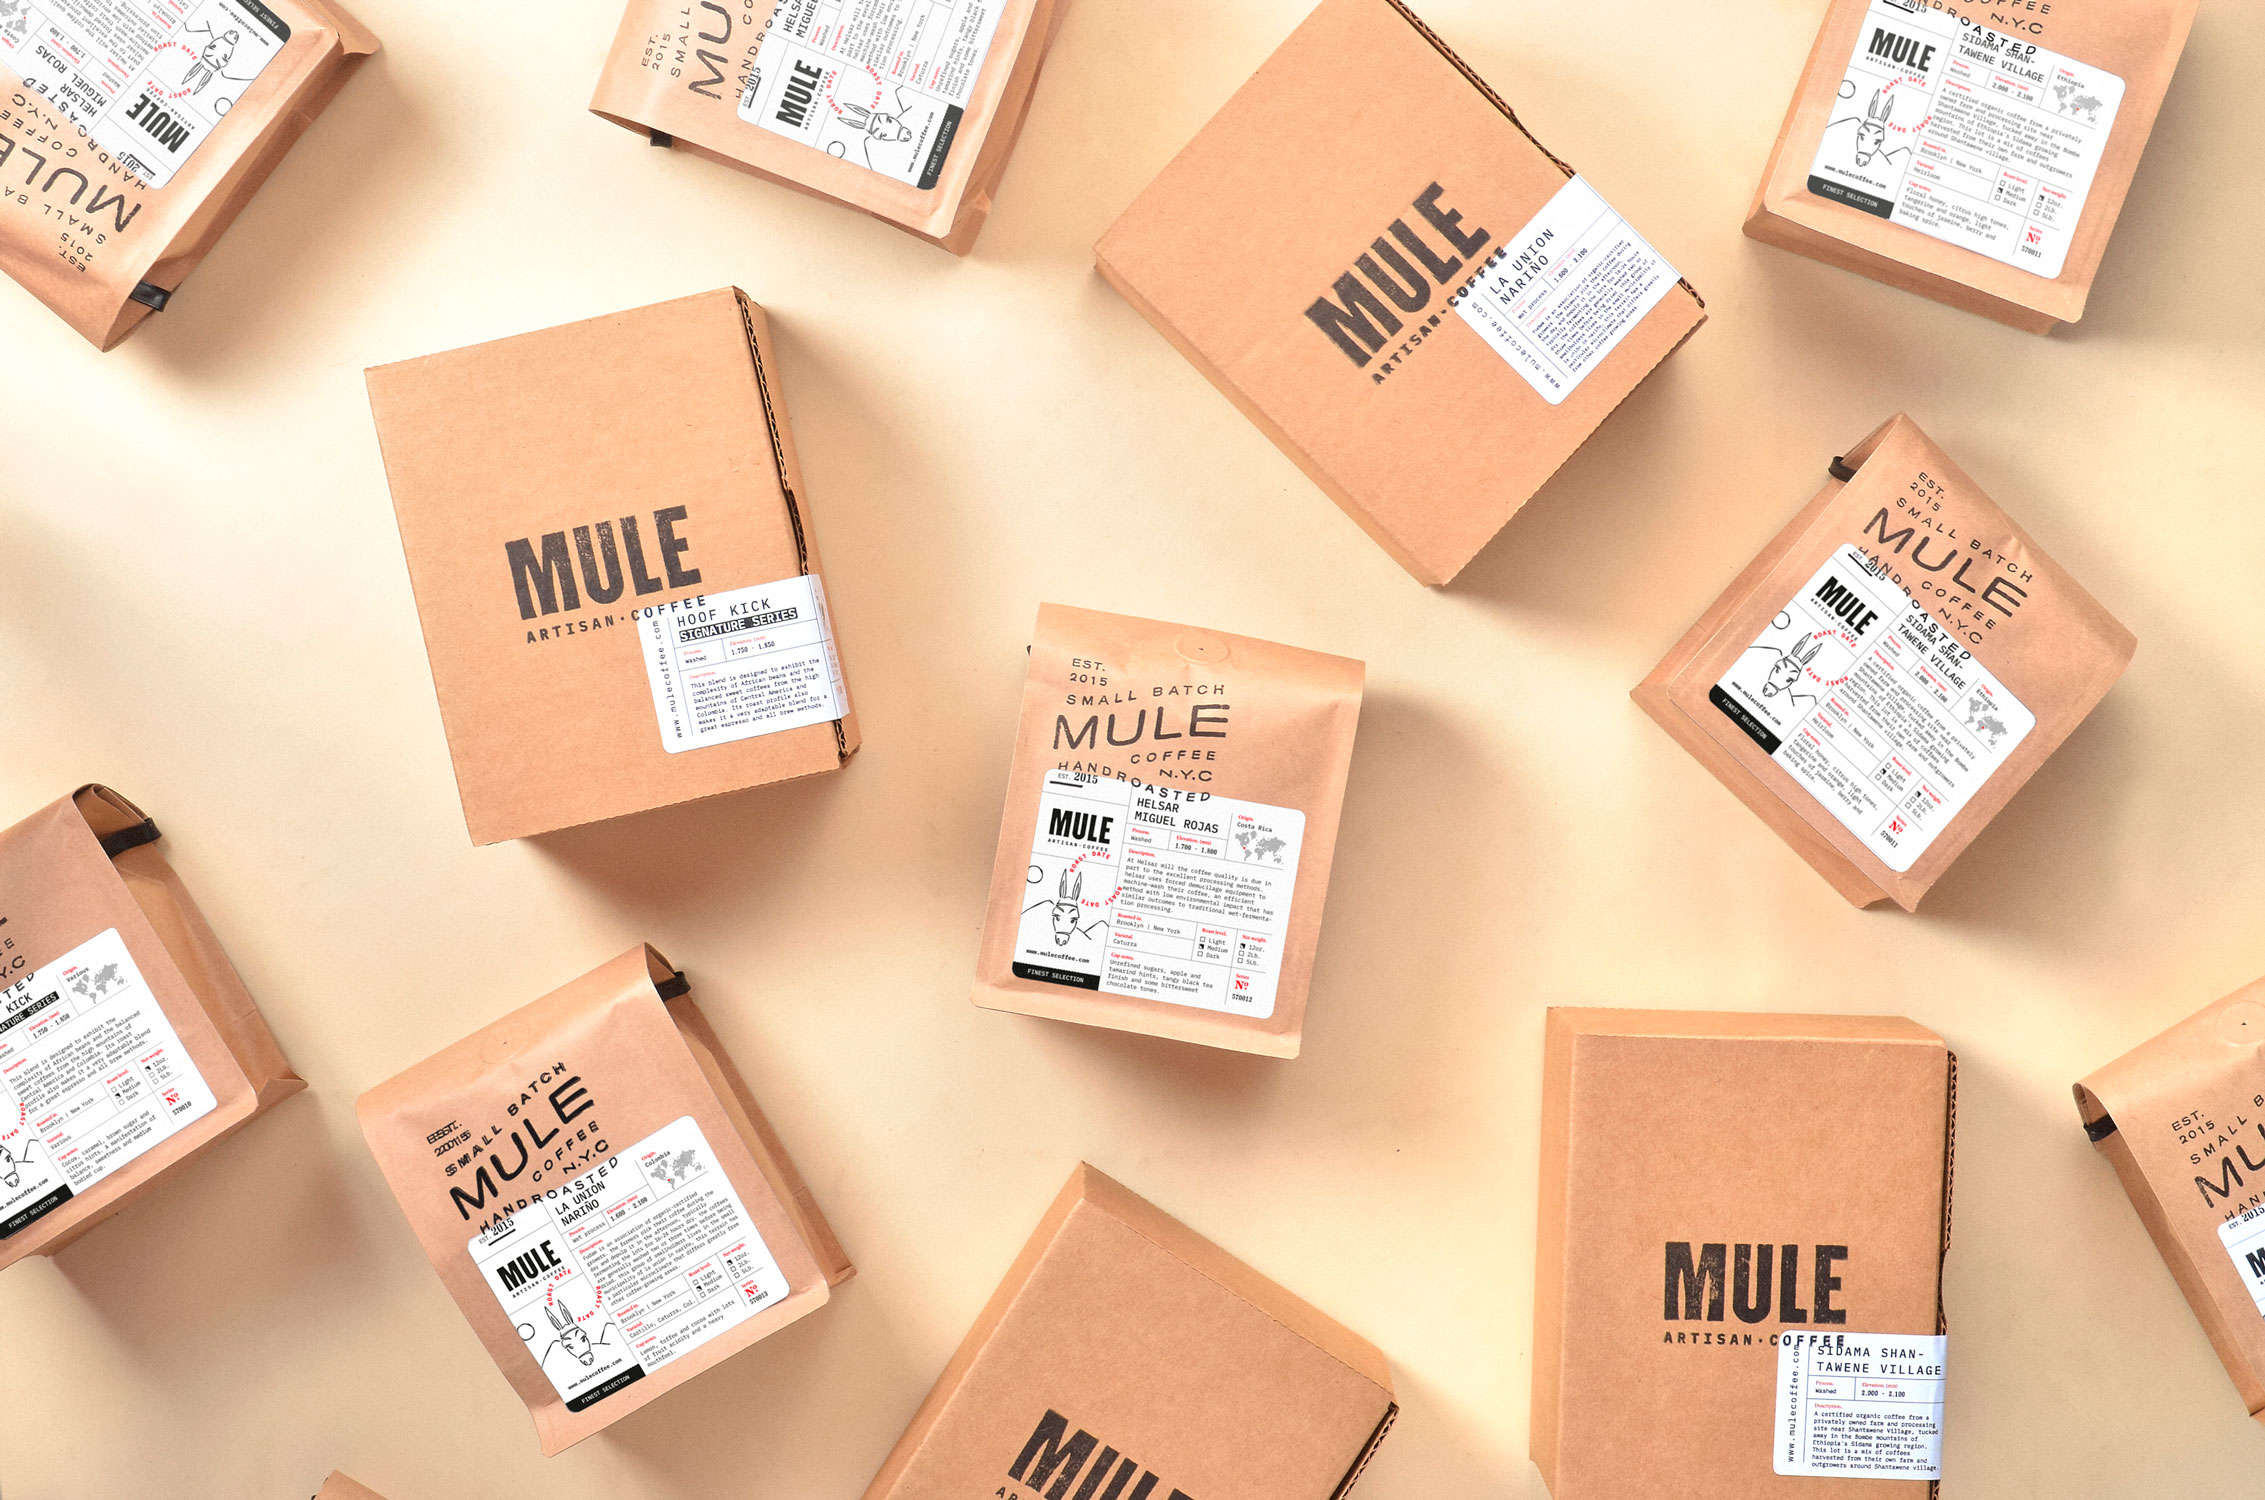 Invade Design Creates the New Brand Identity for Mule Artisan Coffee